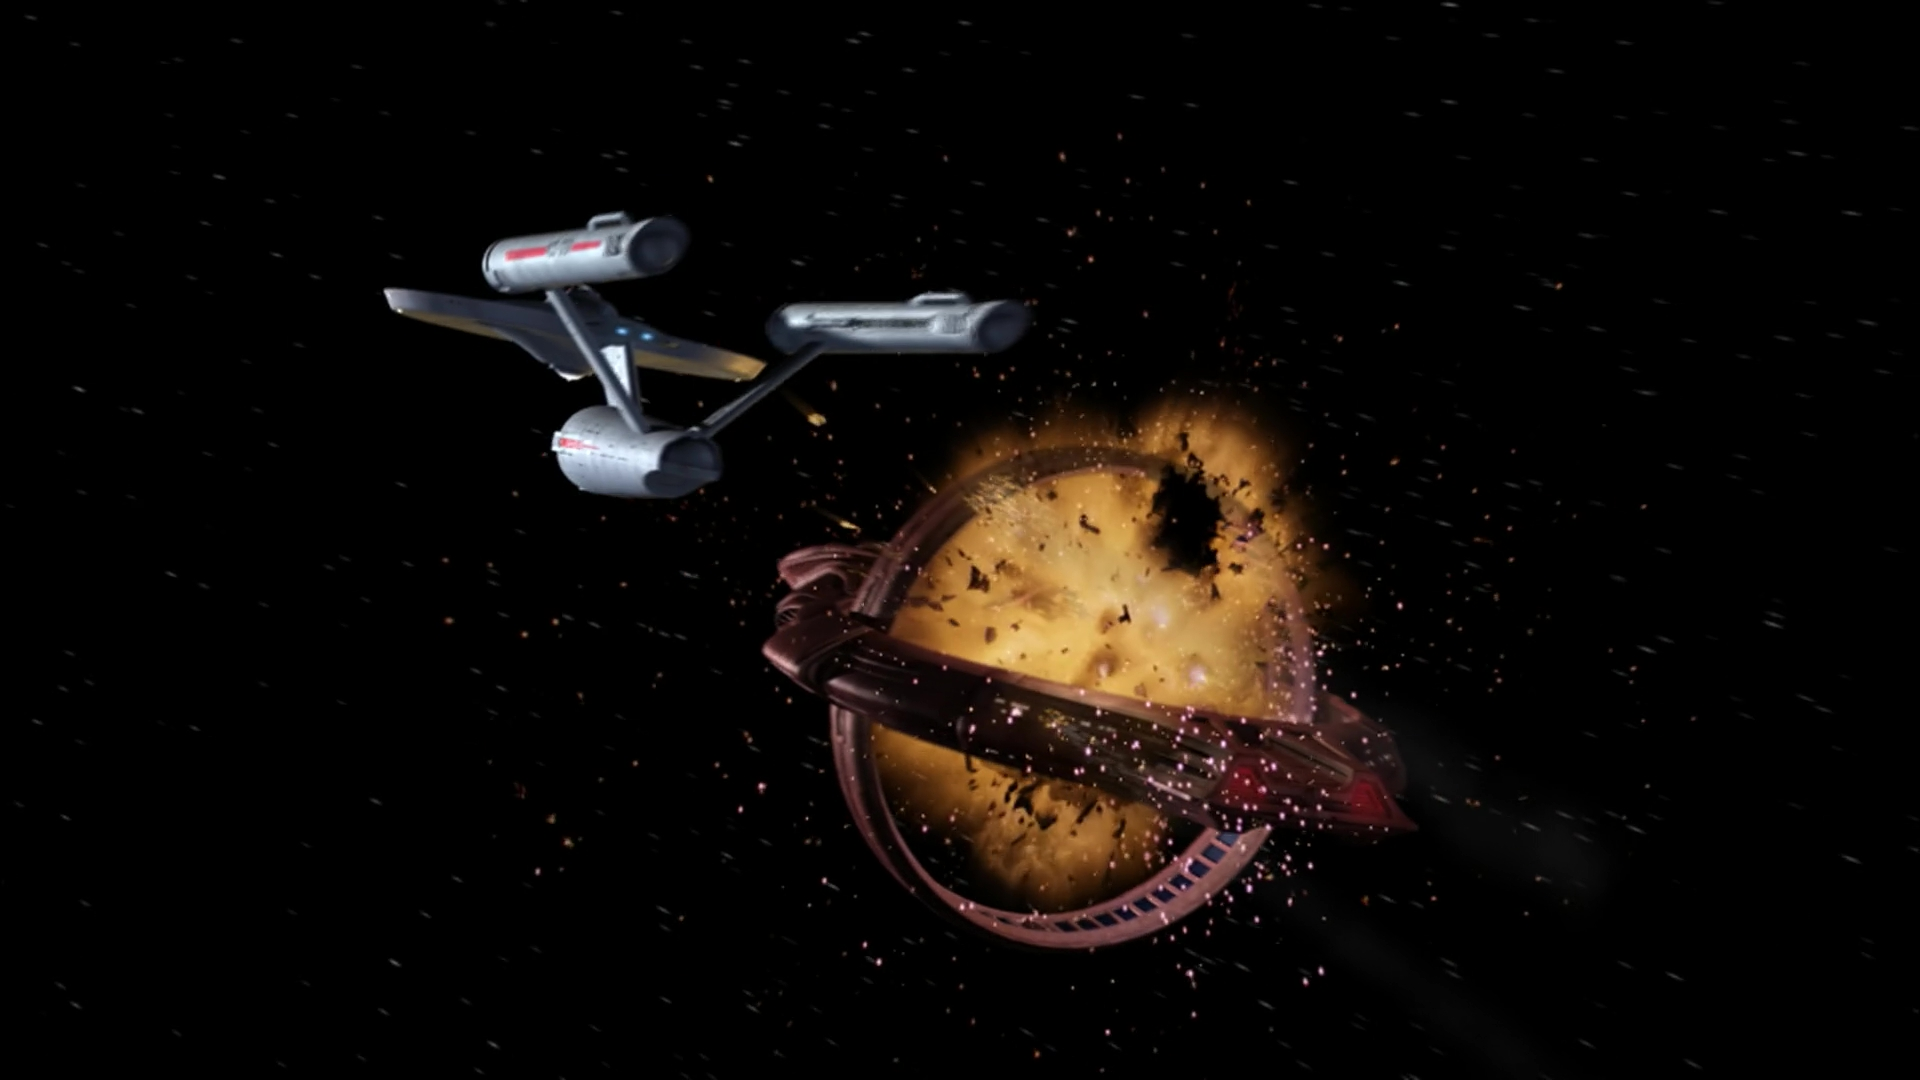 File:Vulcan cruiser destroyed by Defiant.jpg